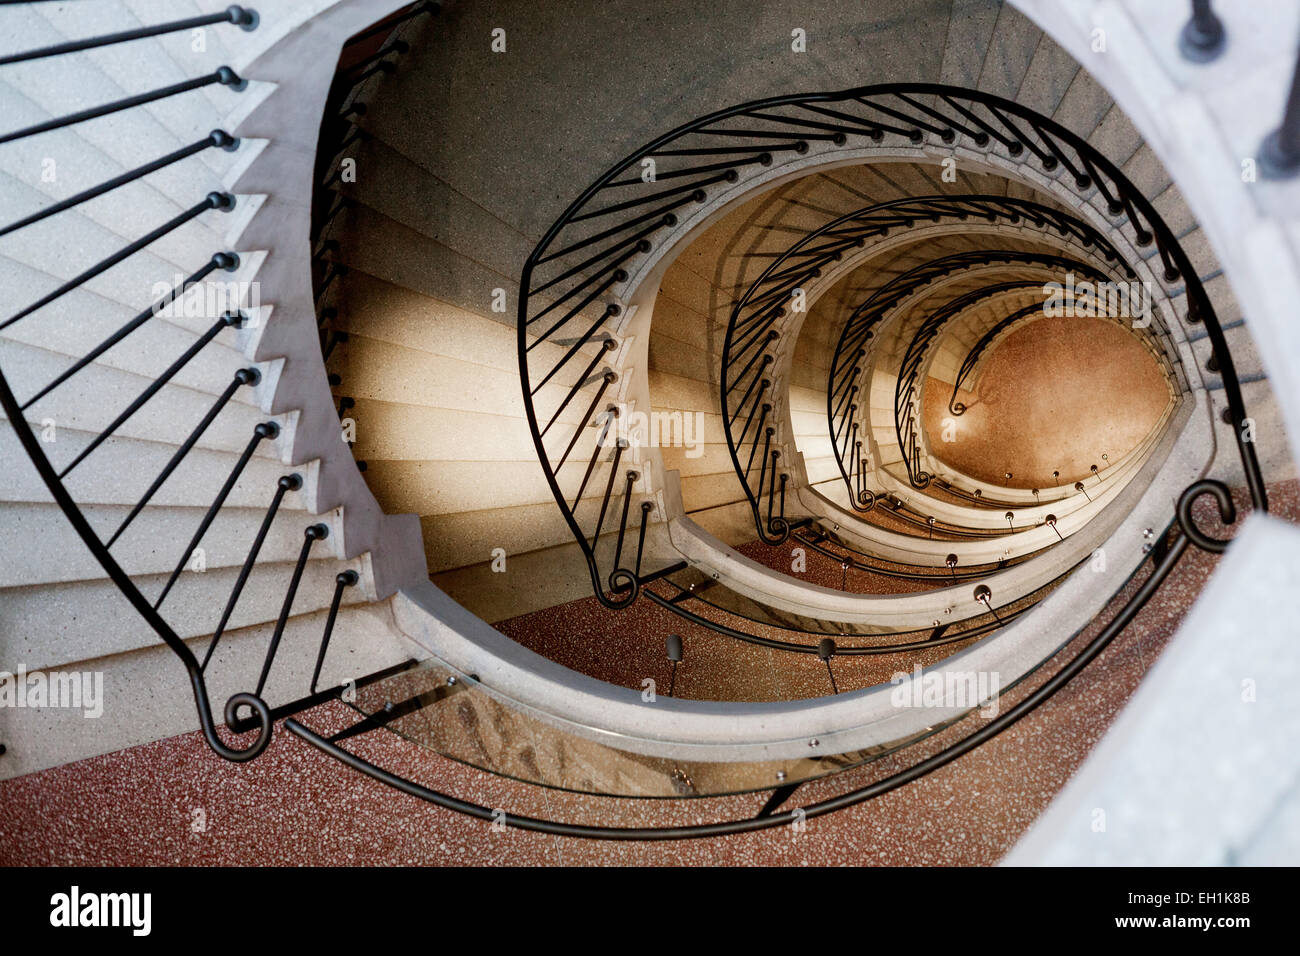 Directly above shot of spiral staircase - Stock Image